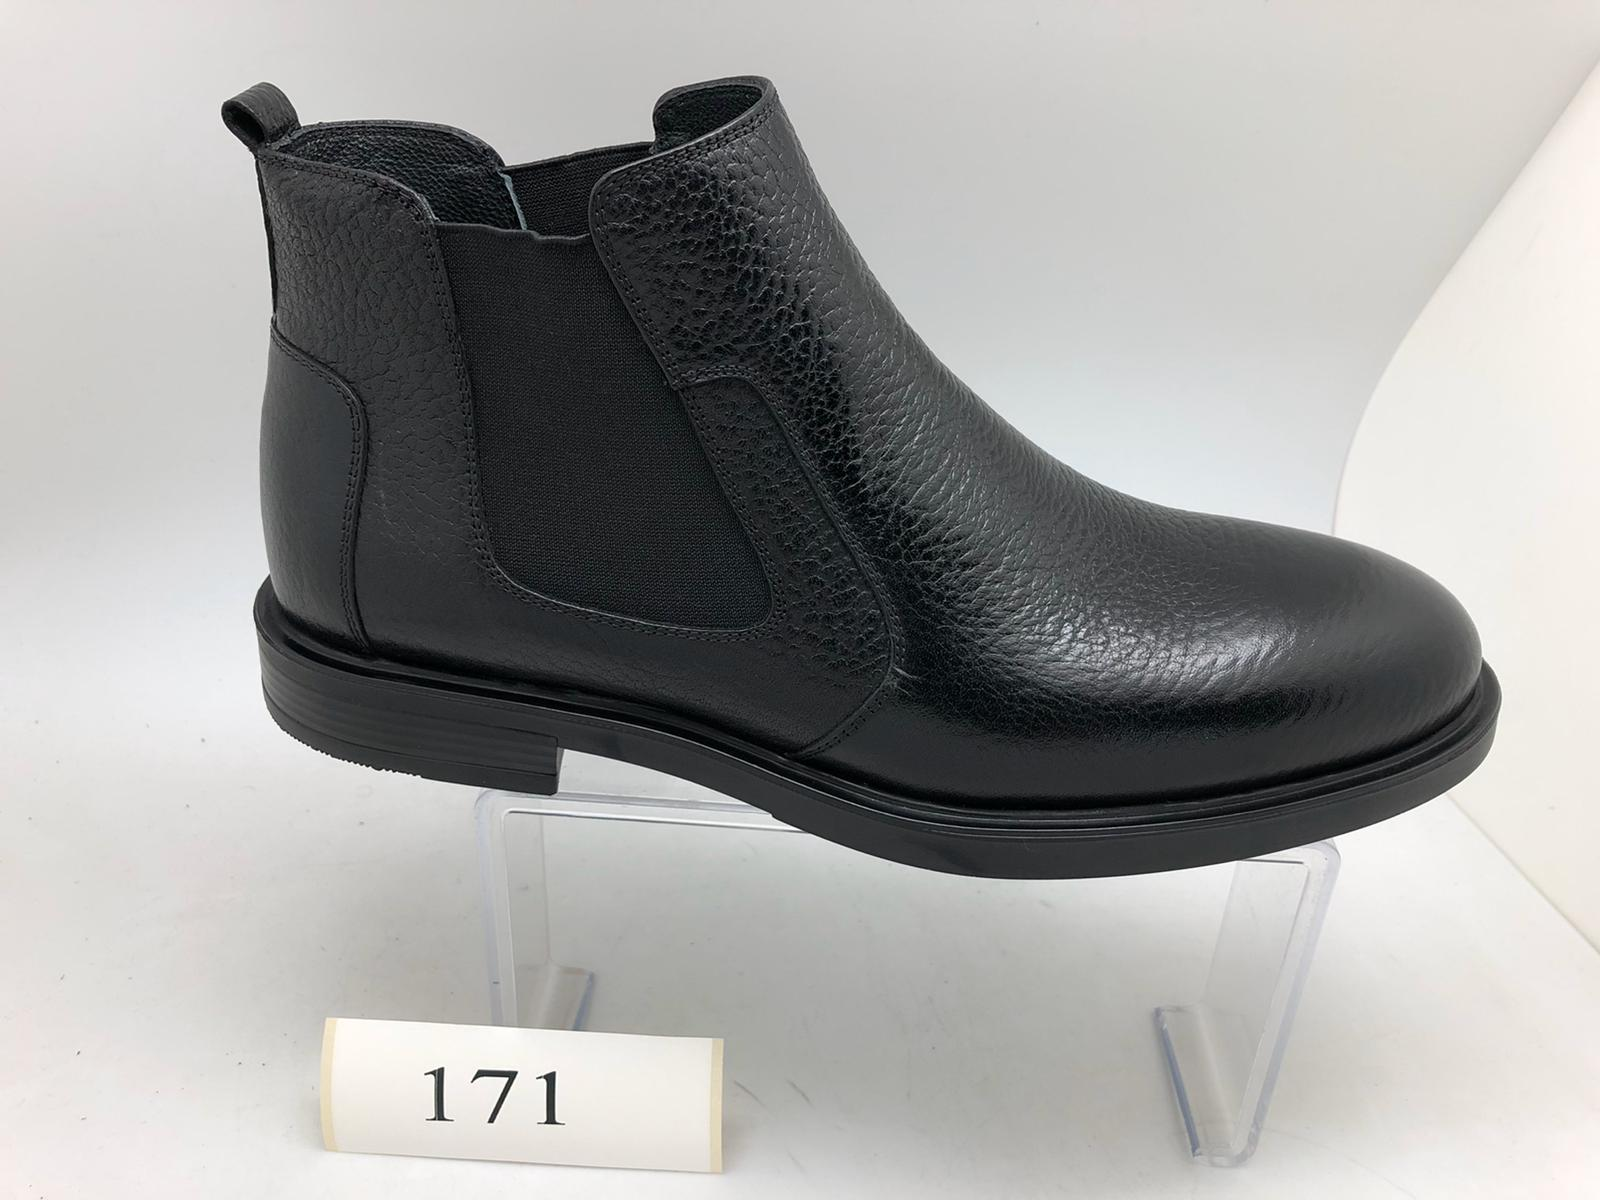 Rubber sole boots-171, Inner Outer Genuine leather, Available:Tpu, Neolite, microlight, thermo, Eva